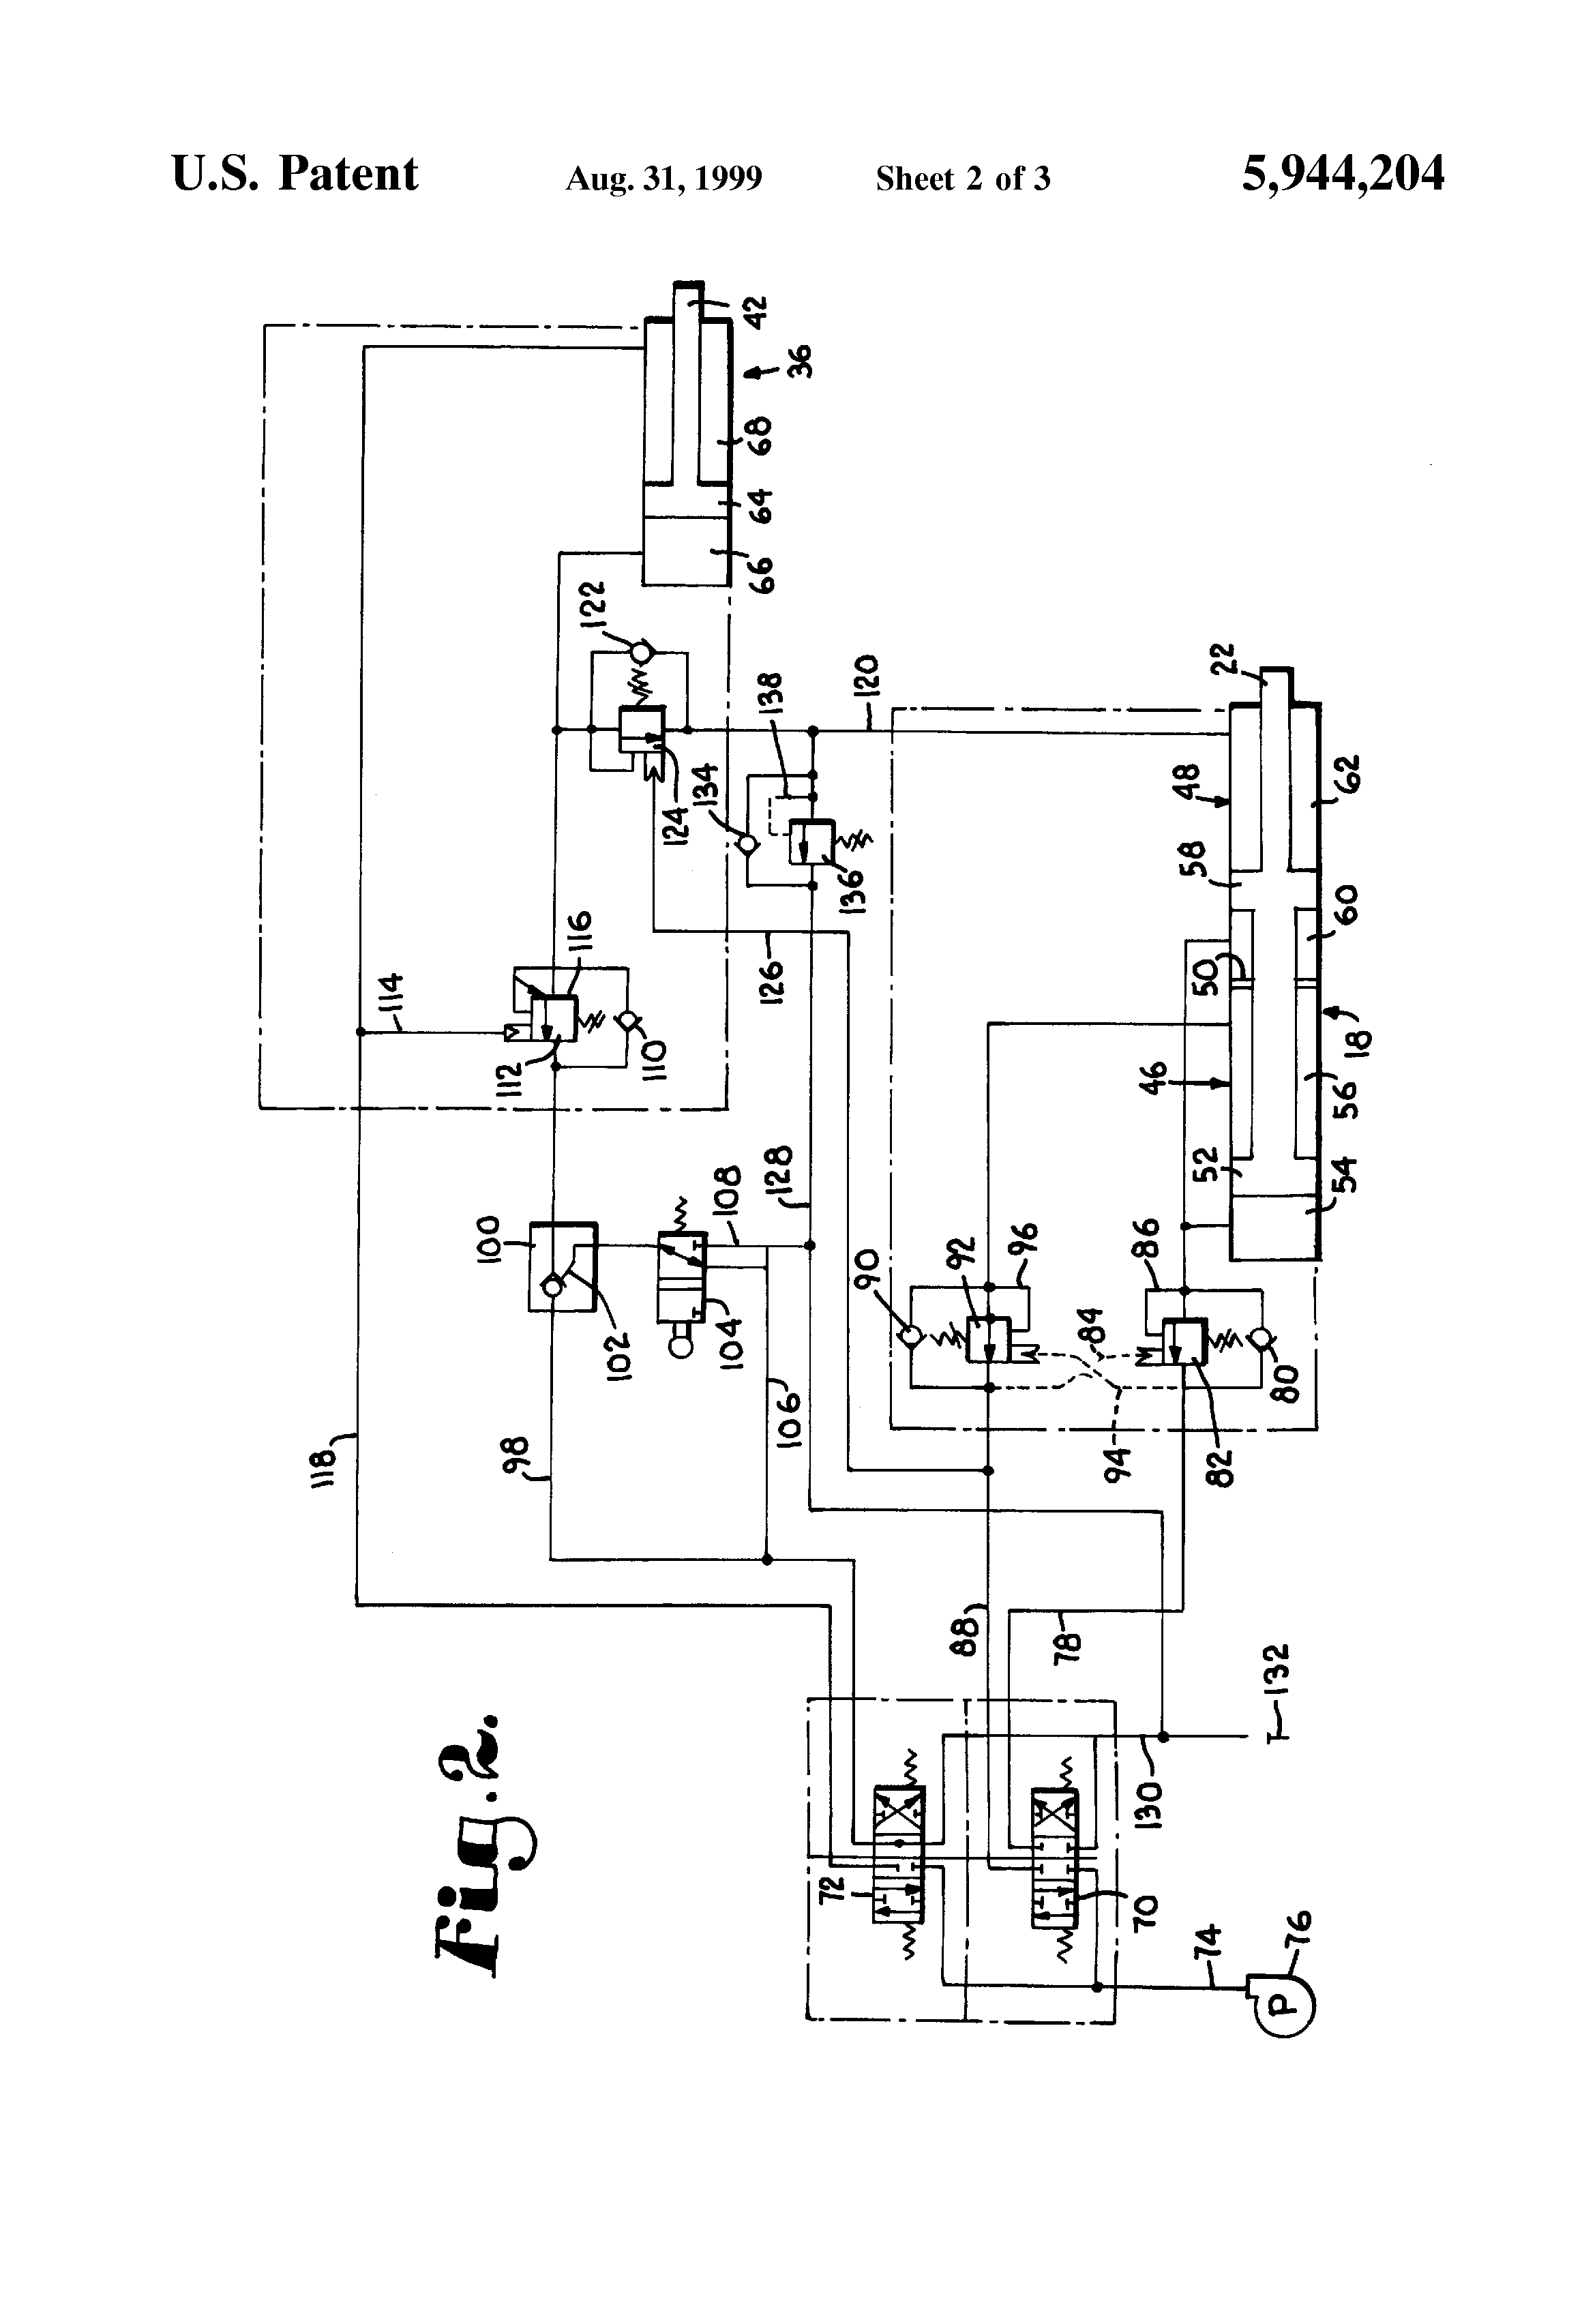 4 Way 3 Position Hydraulic Valve Schematic